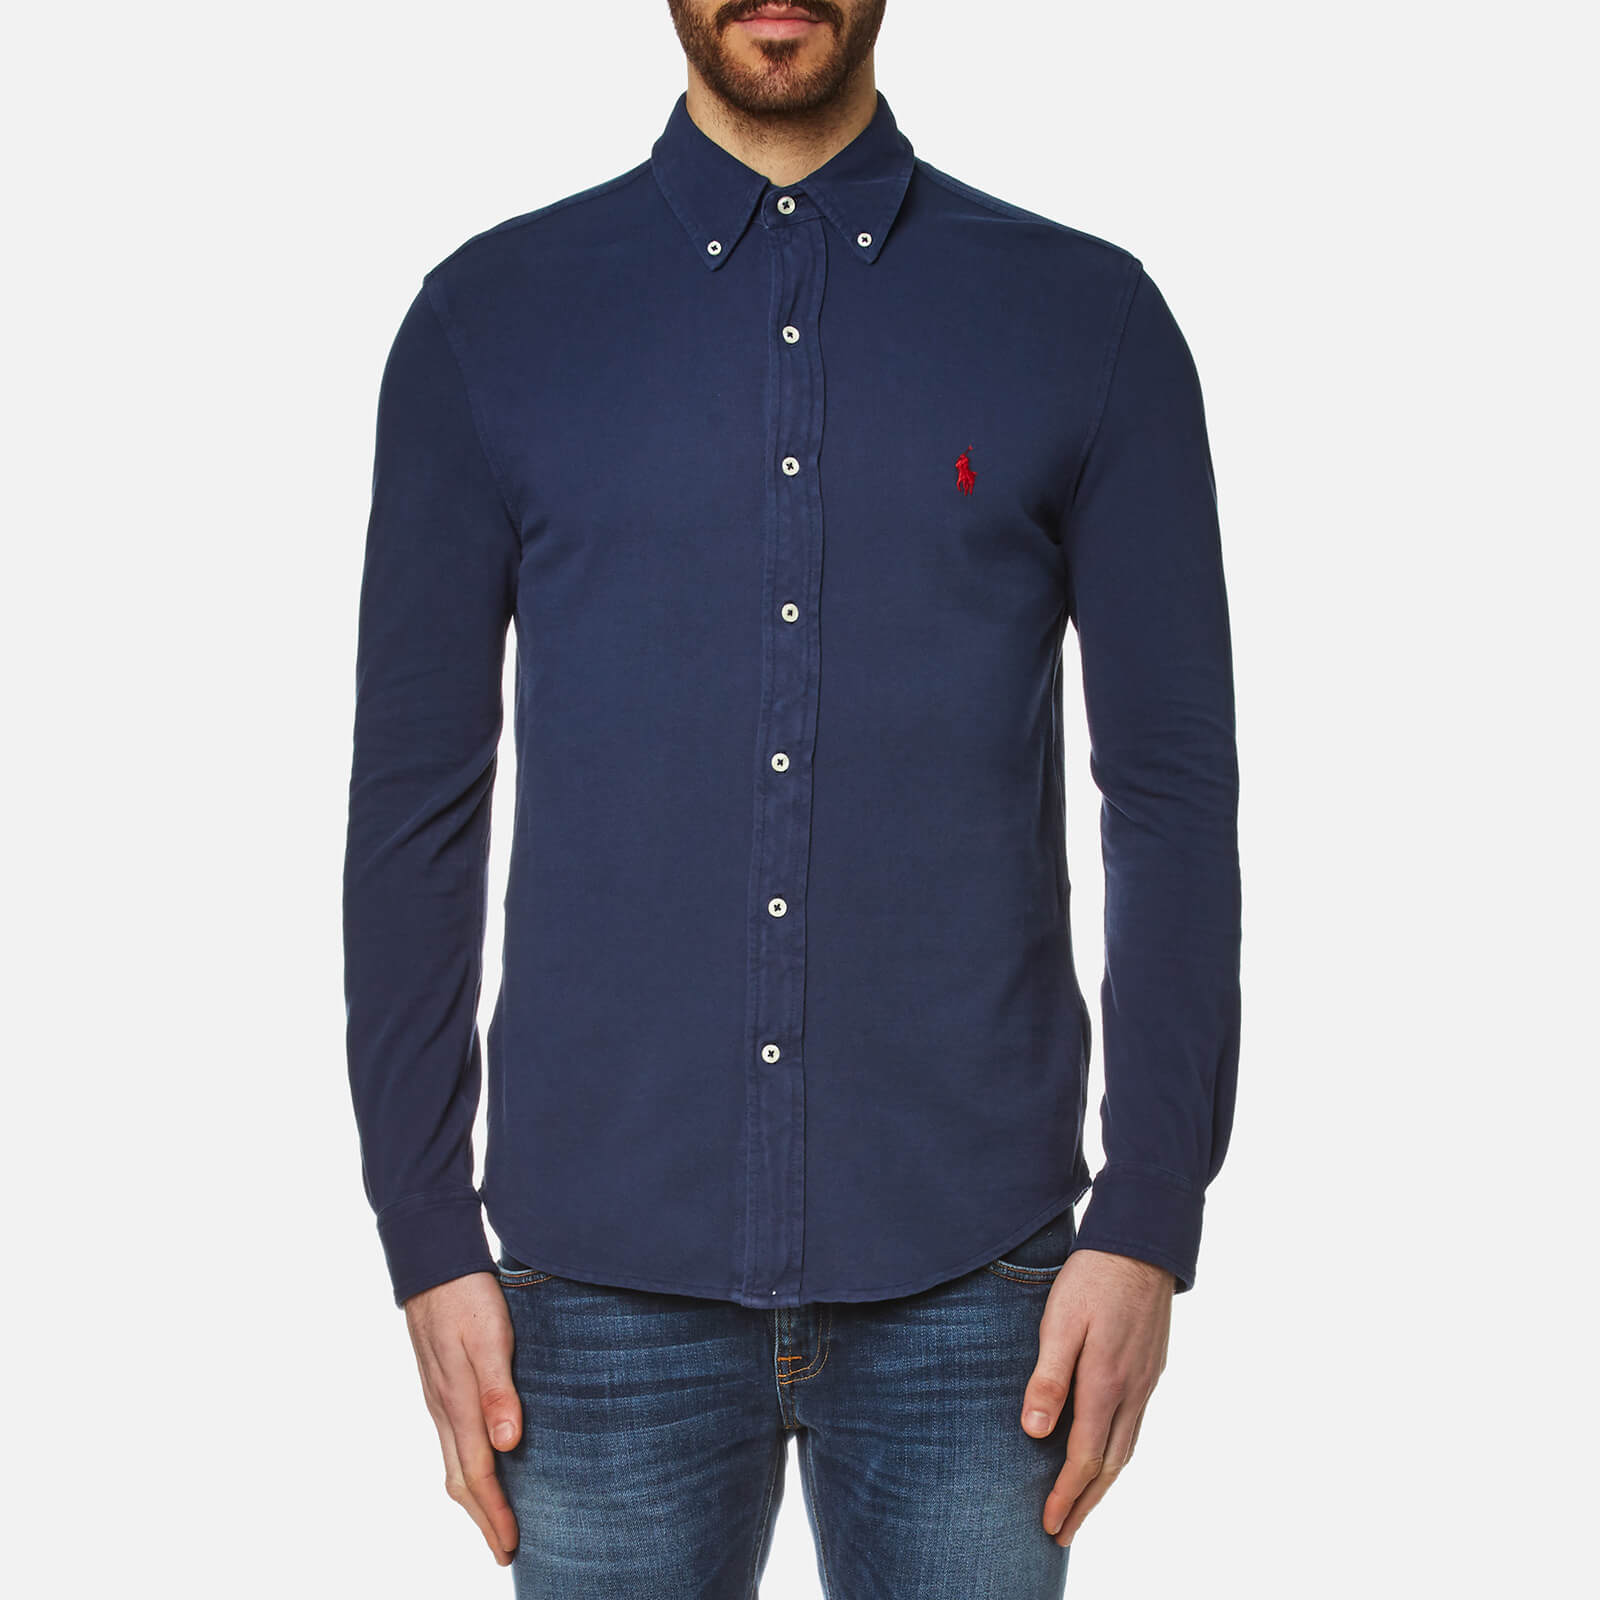 824f5e82 Polo Ralph Lauren Men's Featherweight Mesh Slim Fit Shirt - Navy - Free UK  Delivery over £50